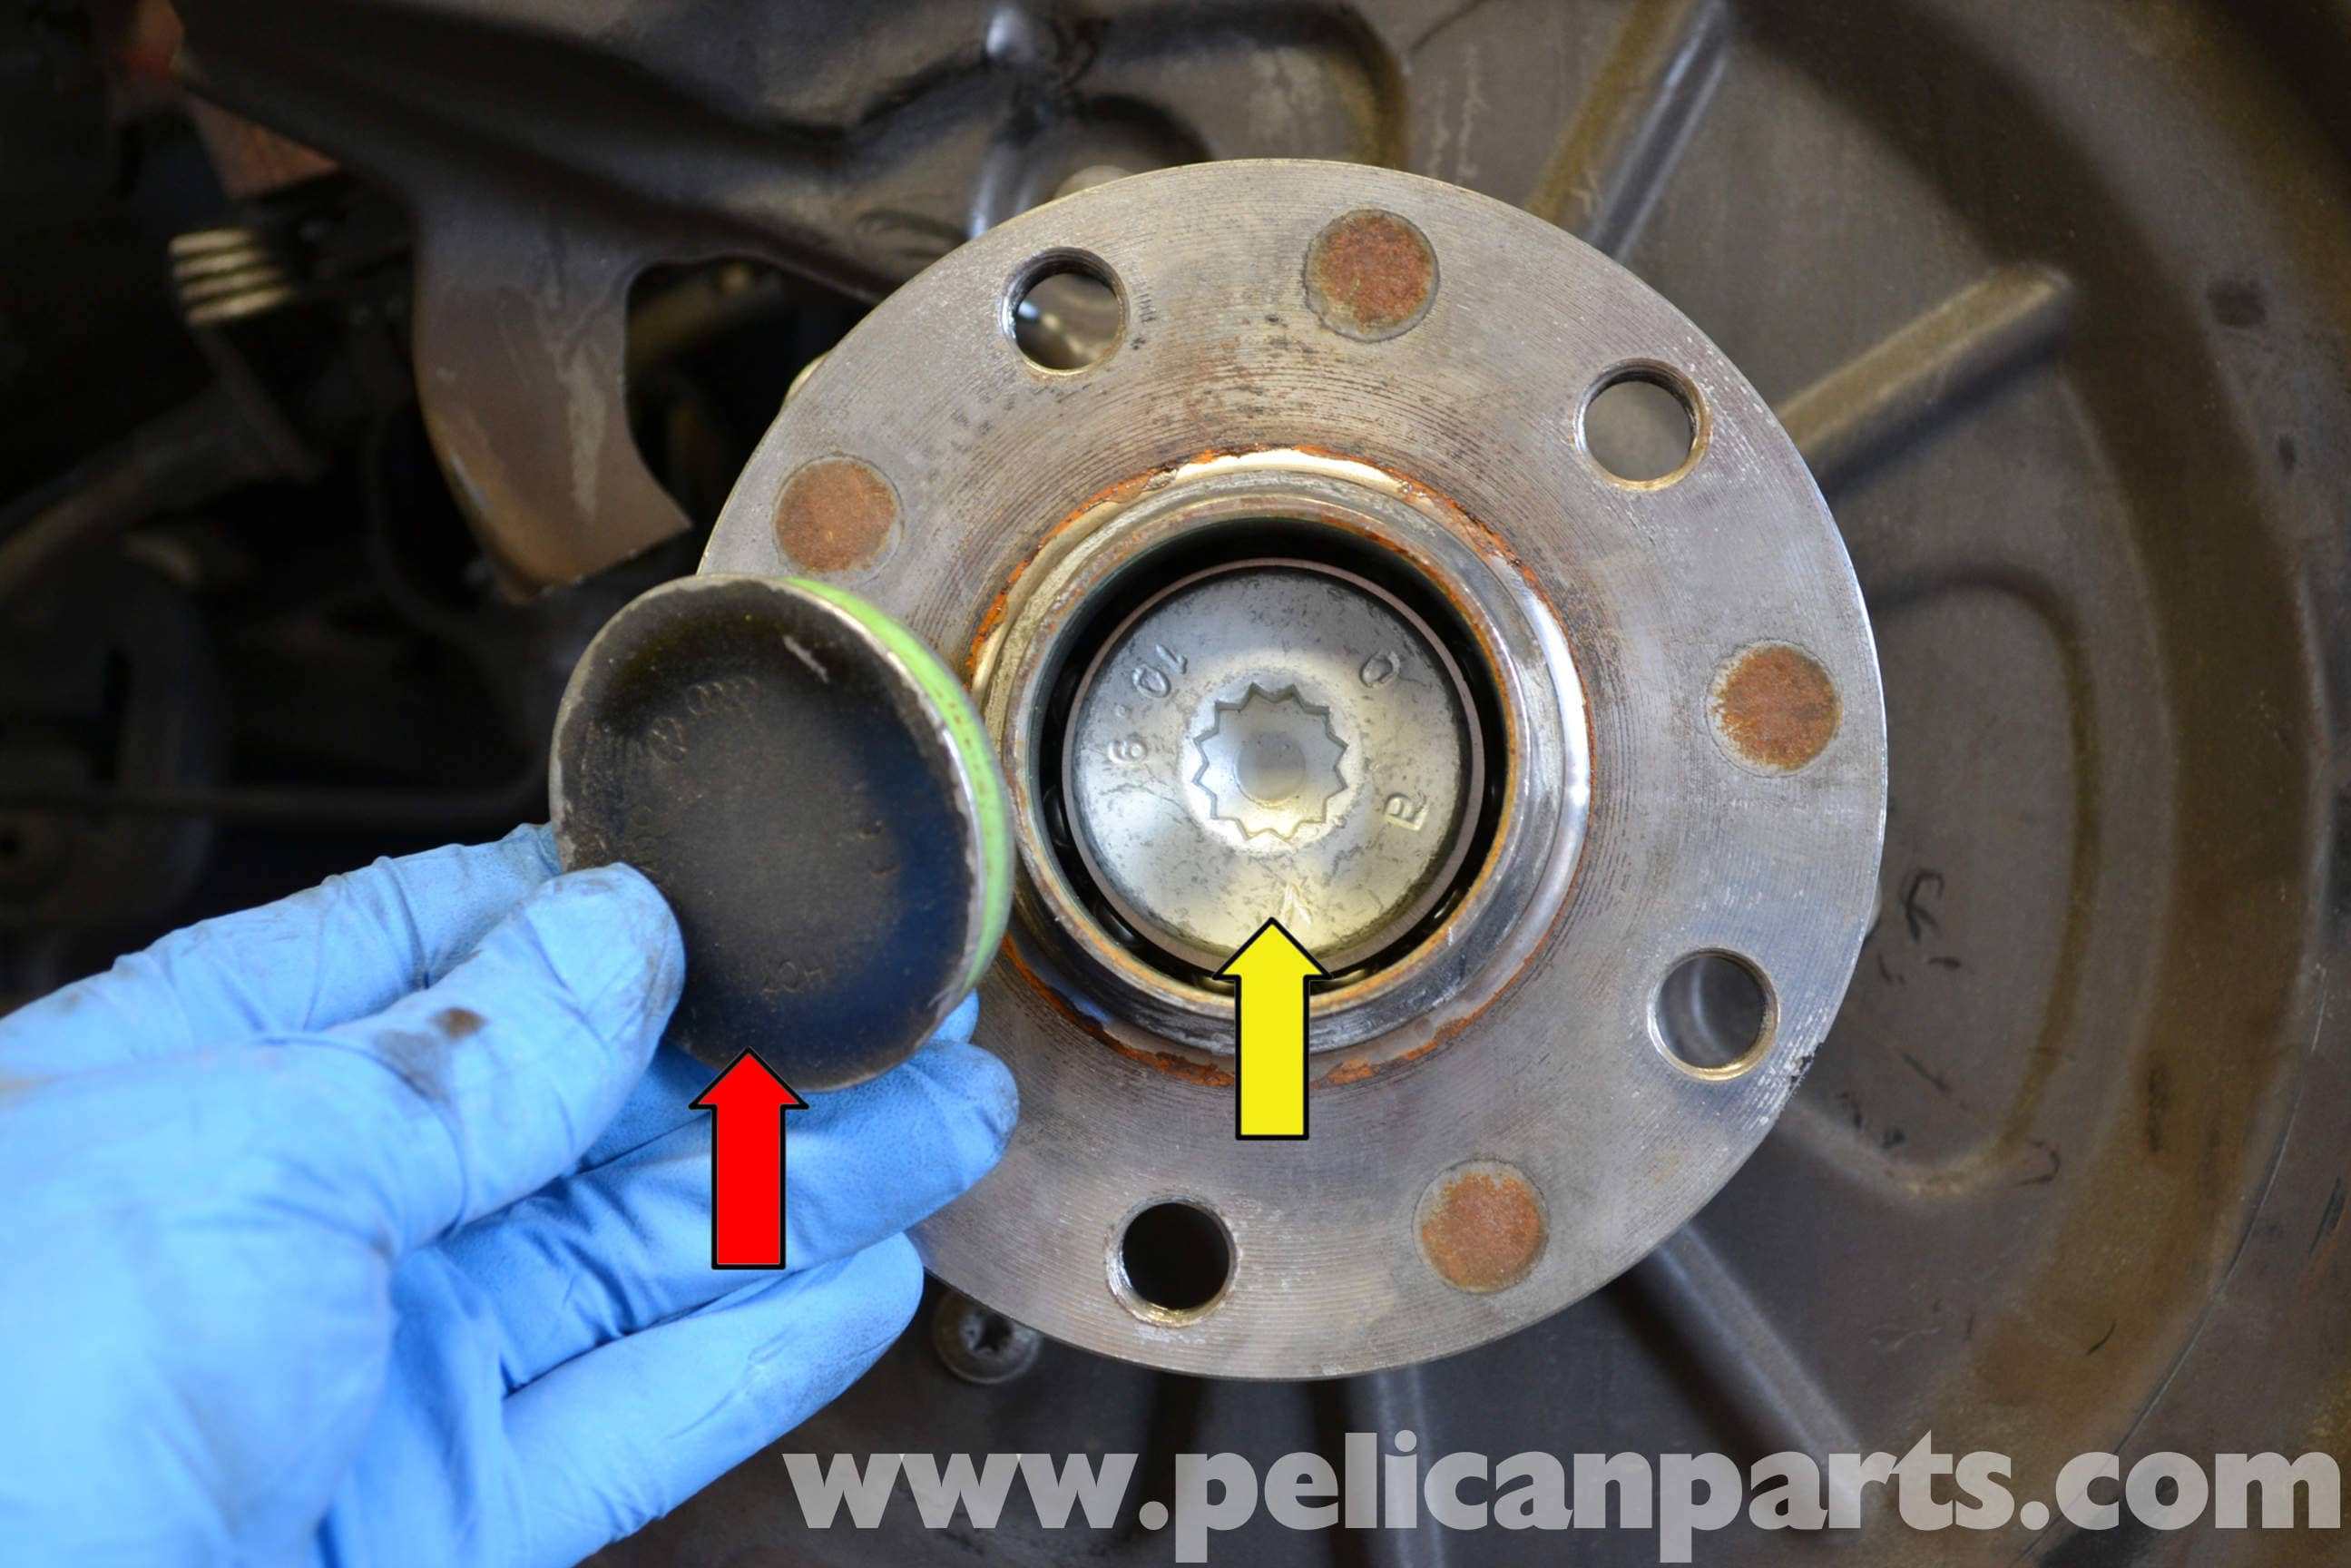 audi a4 b6 rear wheel hub and bearing replacement 2002 2008 rh pelicanparts com 2001 Audi A4 Quattro 2001 Audi A4 1.8T Interior